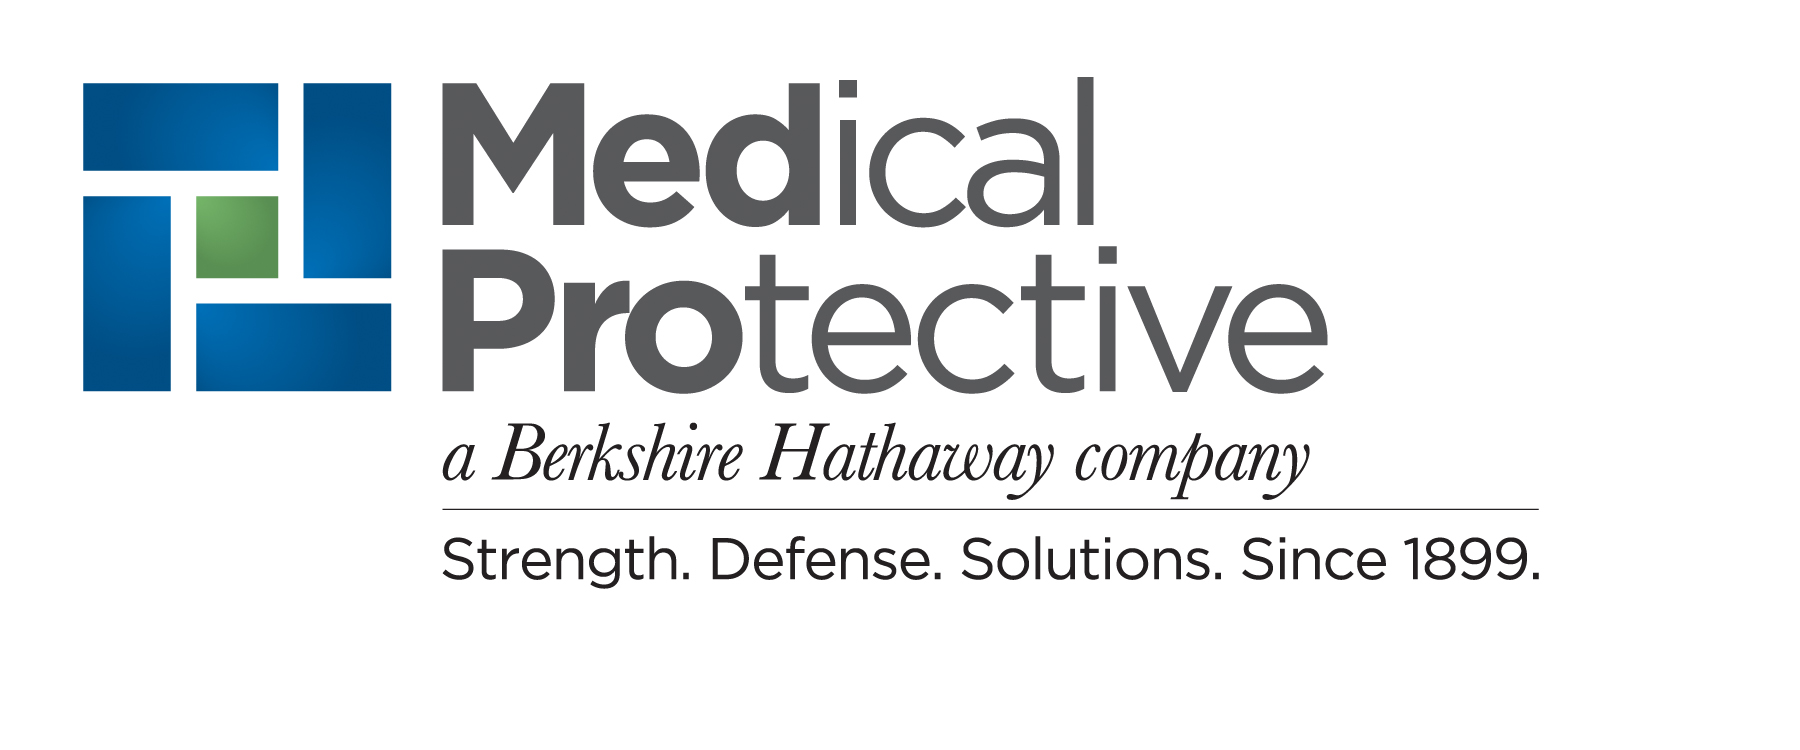 Medical Protective Company